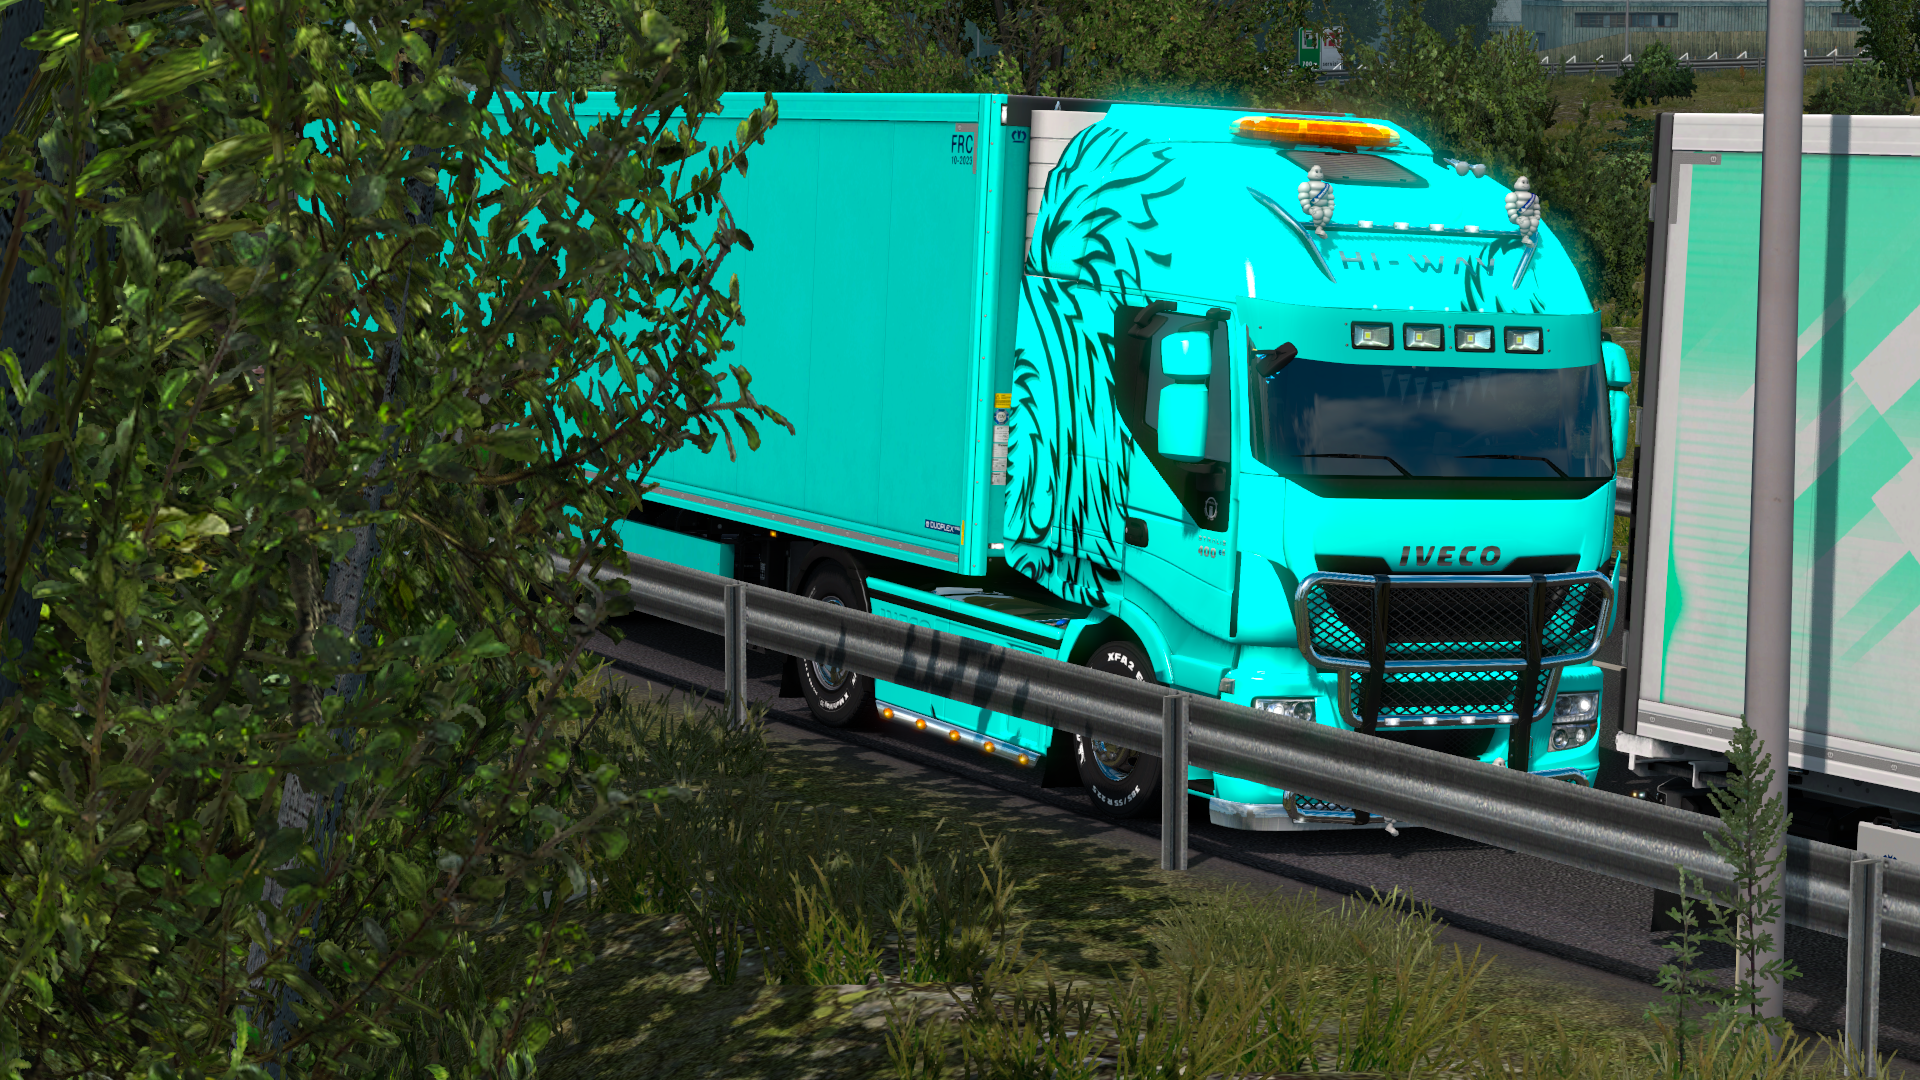 ets2_20190324_155034_00.png